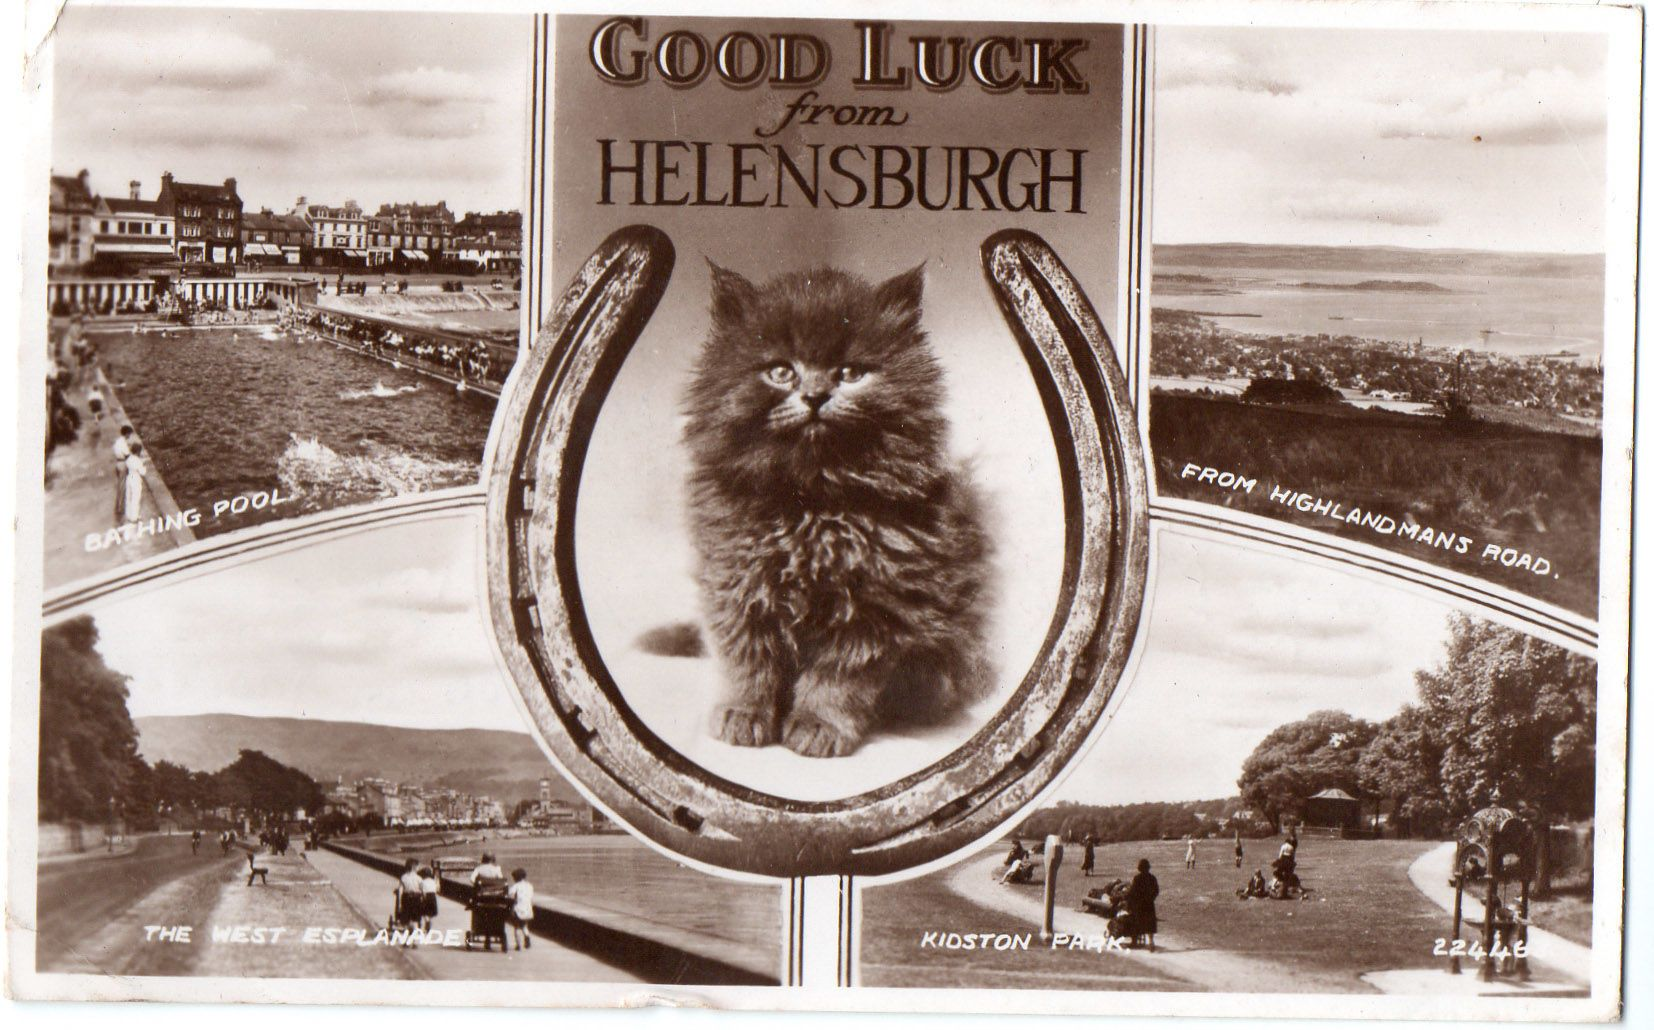 Valentines Multiview Postcard Goodluck from Helensburgh